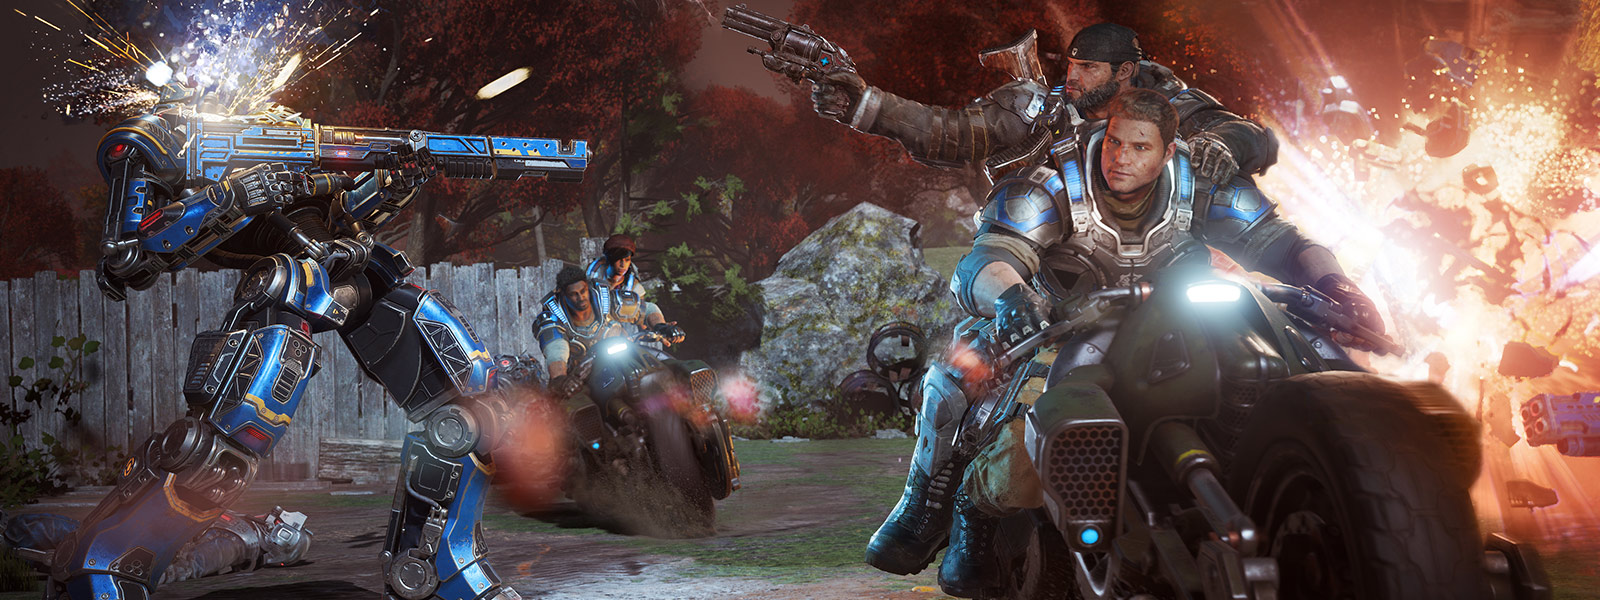 JD Fenix and his friends fire weapons and ride motorcycles during a battle from the game Gears of War 4